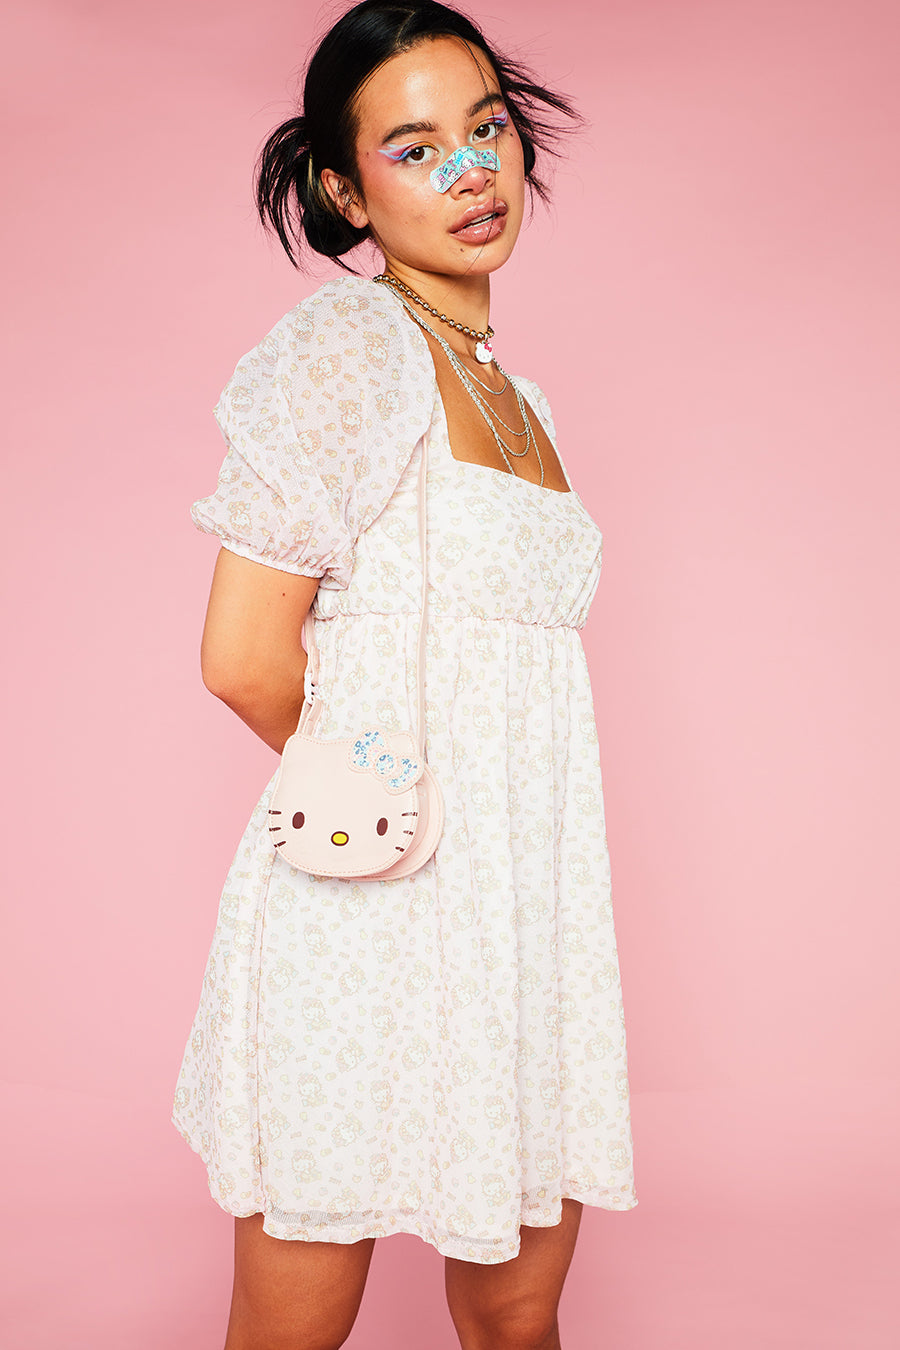 HELLO KITTY VOLUMINOUS PUFFY SLEEVE DRESS